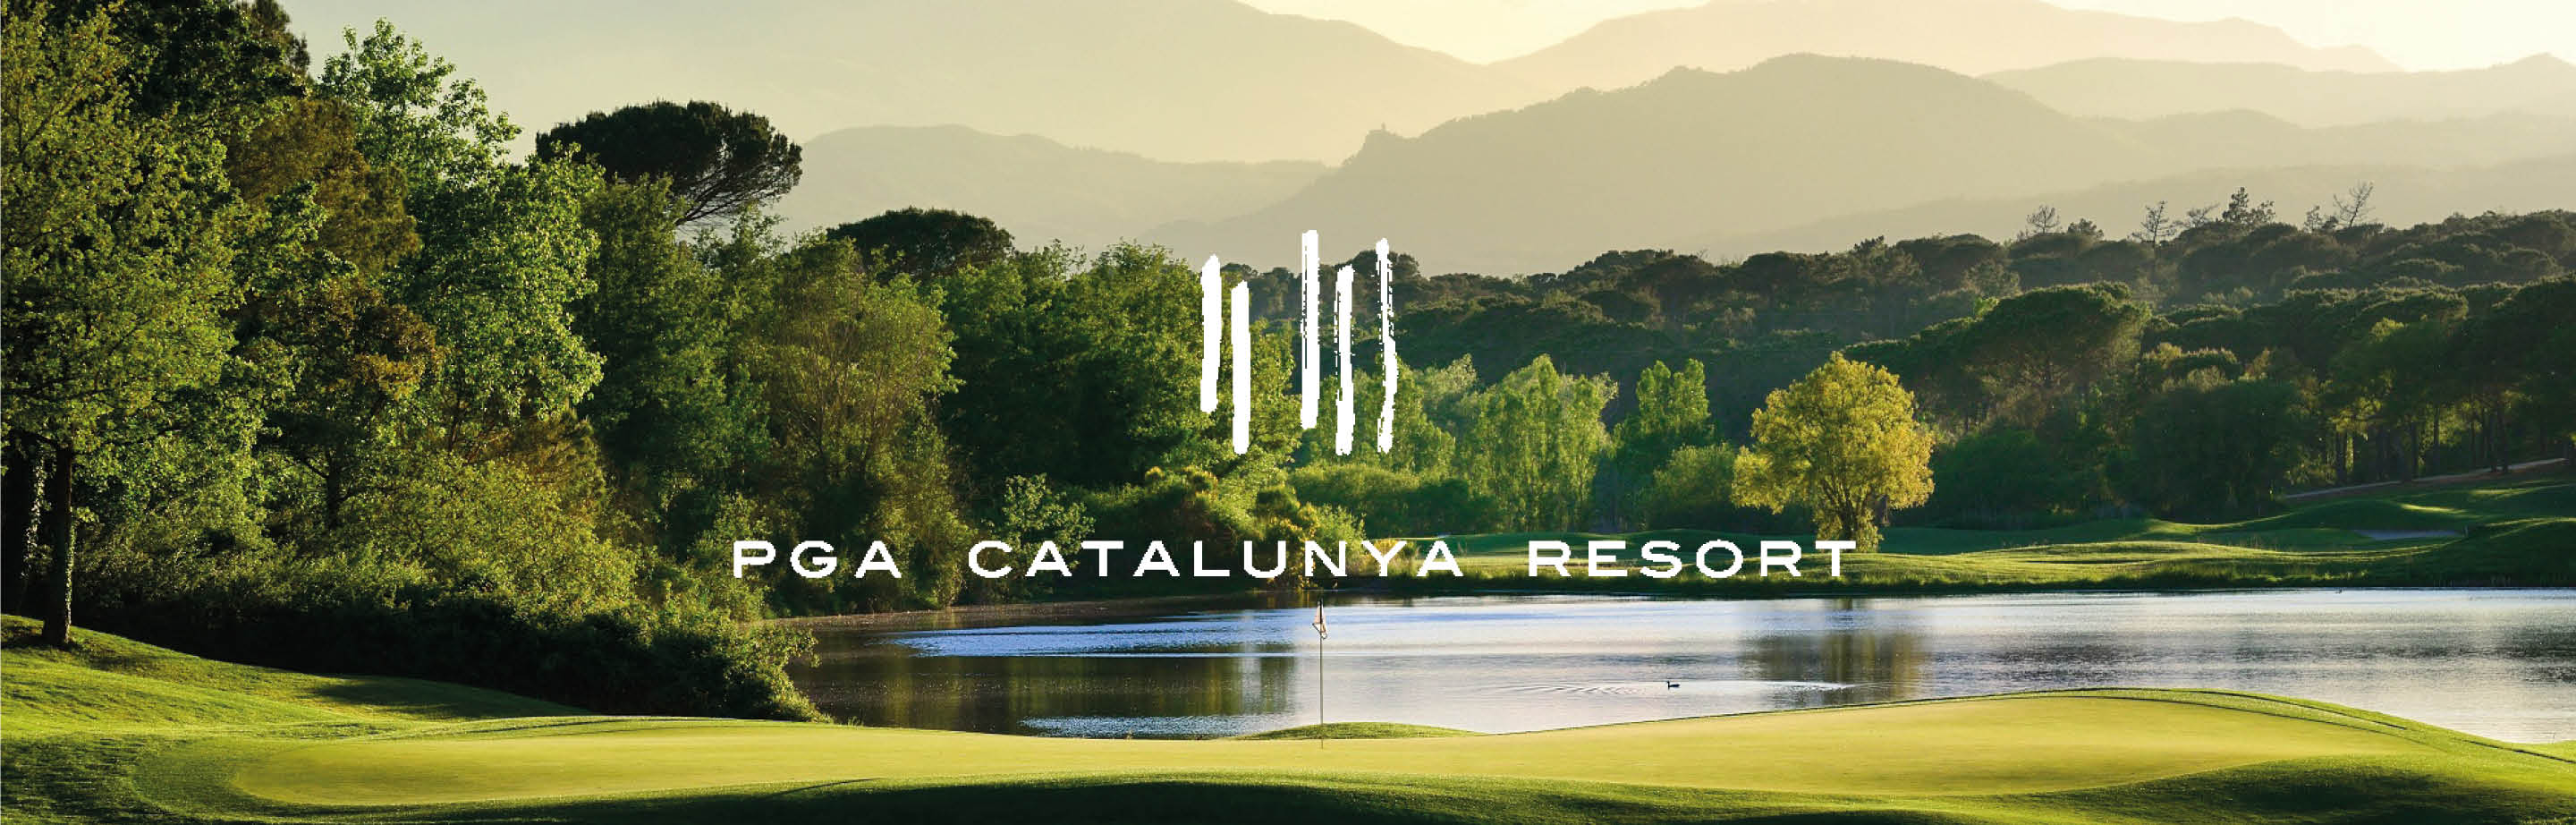 Fantastic Frank PGA Catalunya resort golf villas